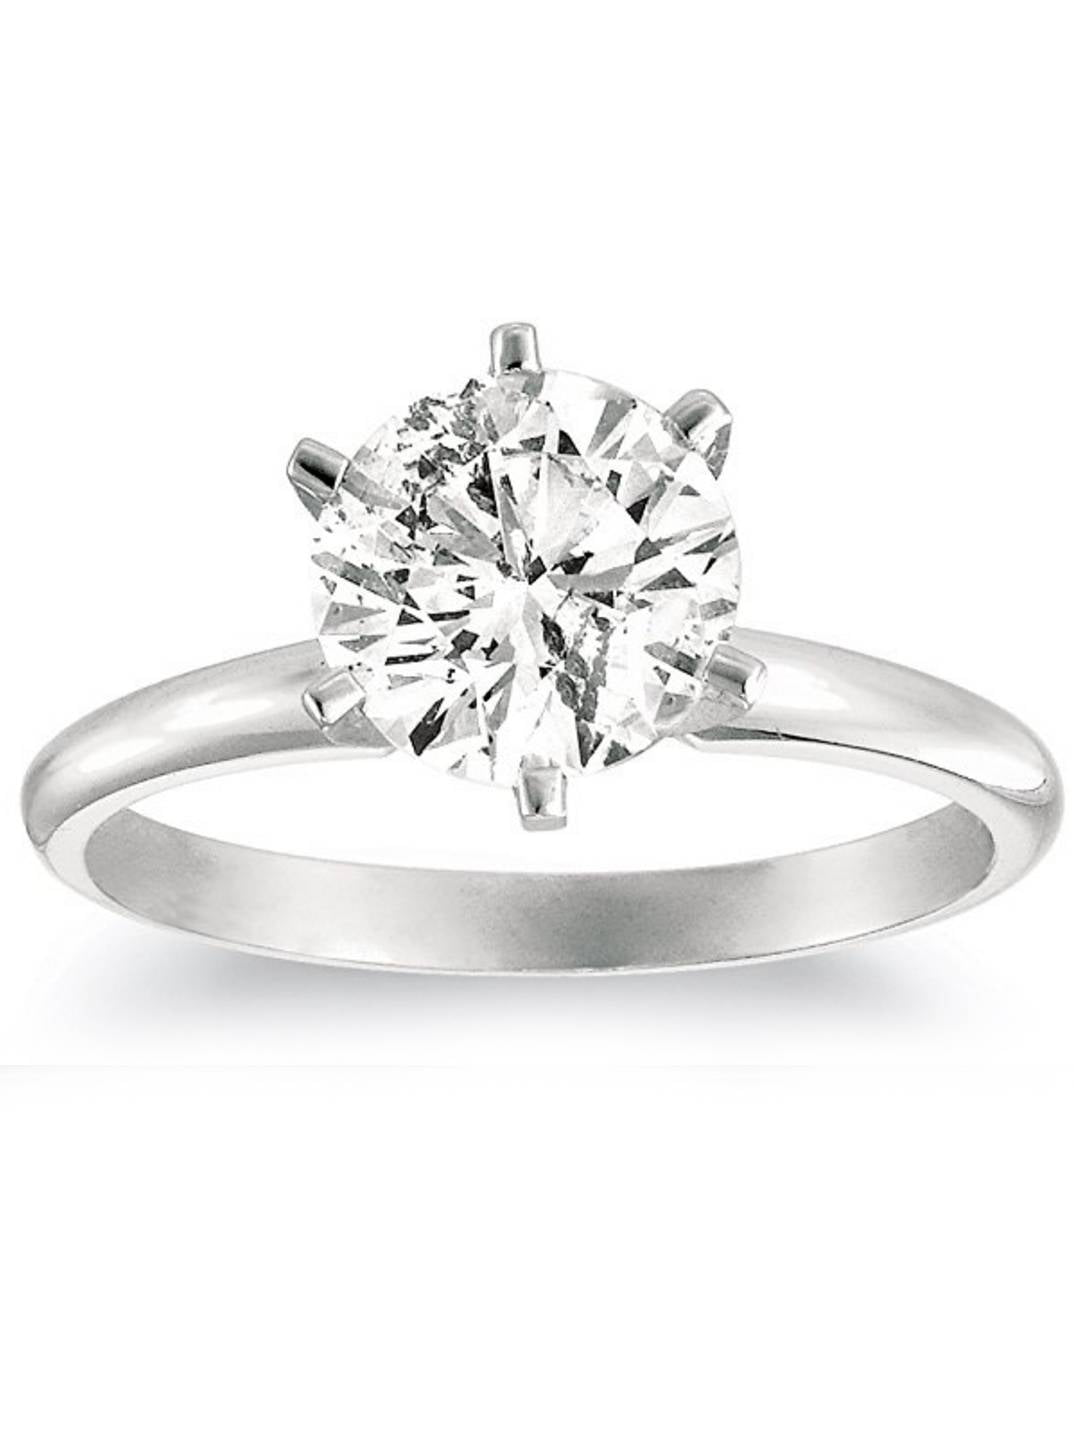 1 1 4ct Solitaire Natural Diamond Engagement Ring 14K White Gold Round Cut by Pompeii3